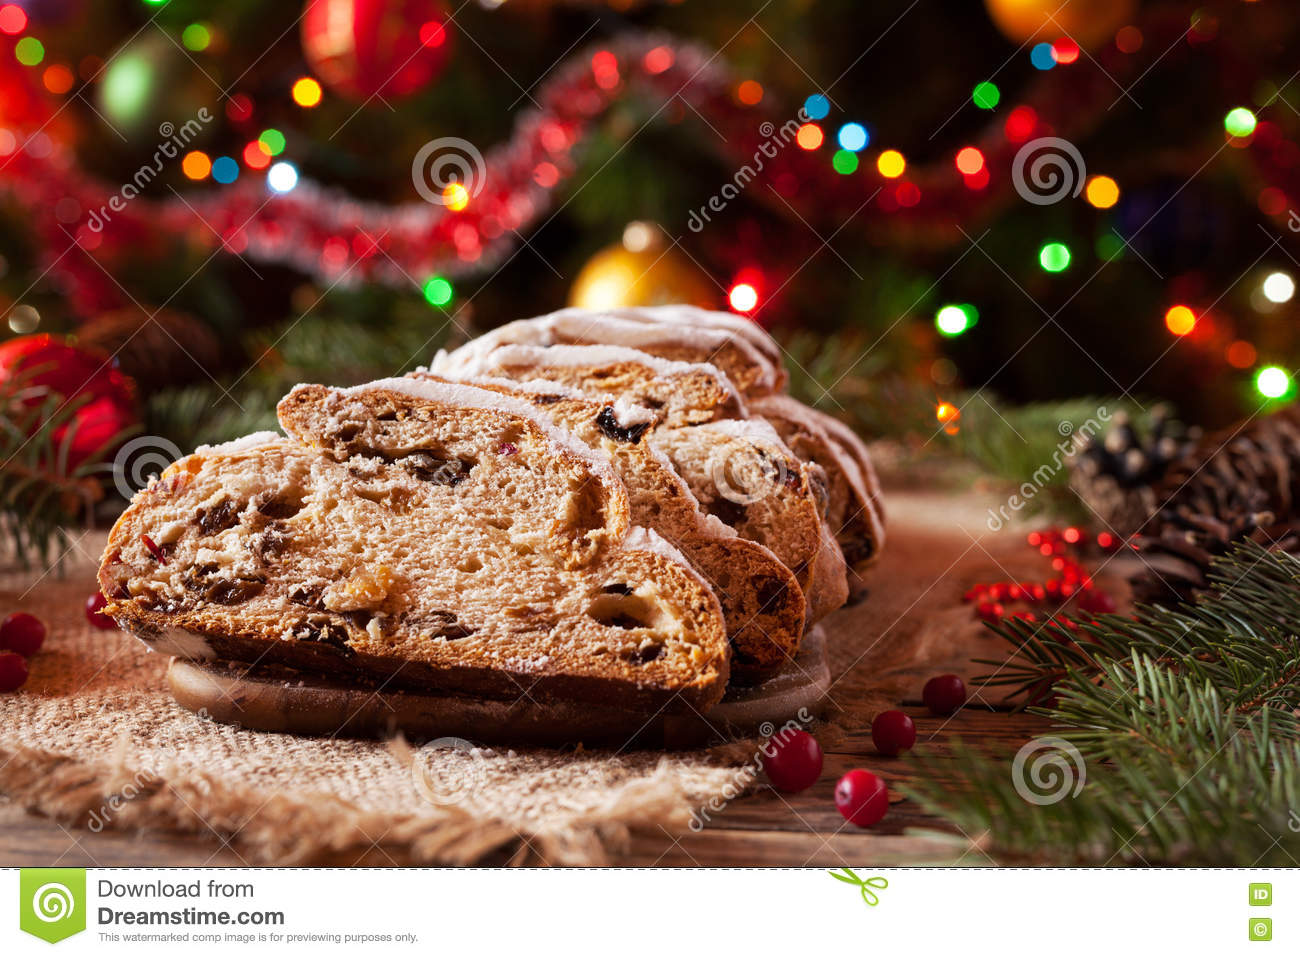 download traditional german christmas cake stollen with marzipan nuts and berries celebration decorations